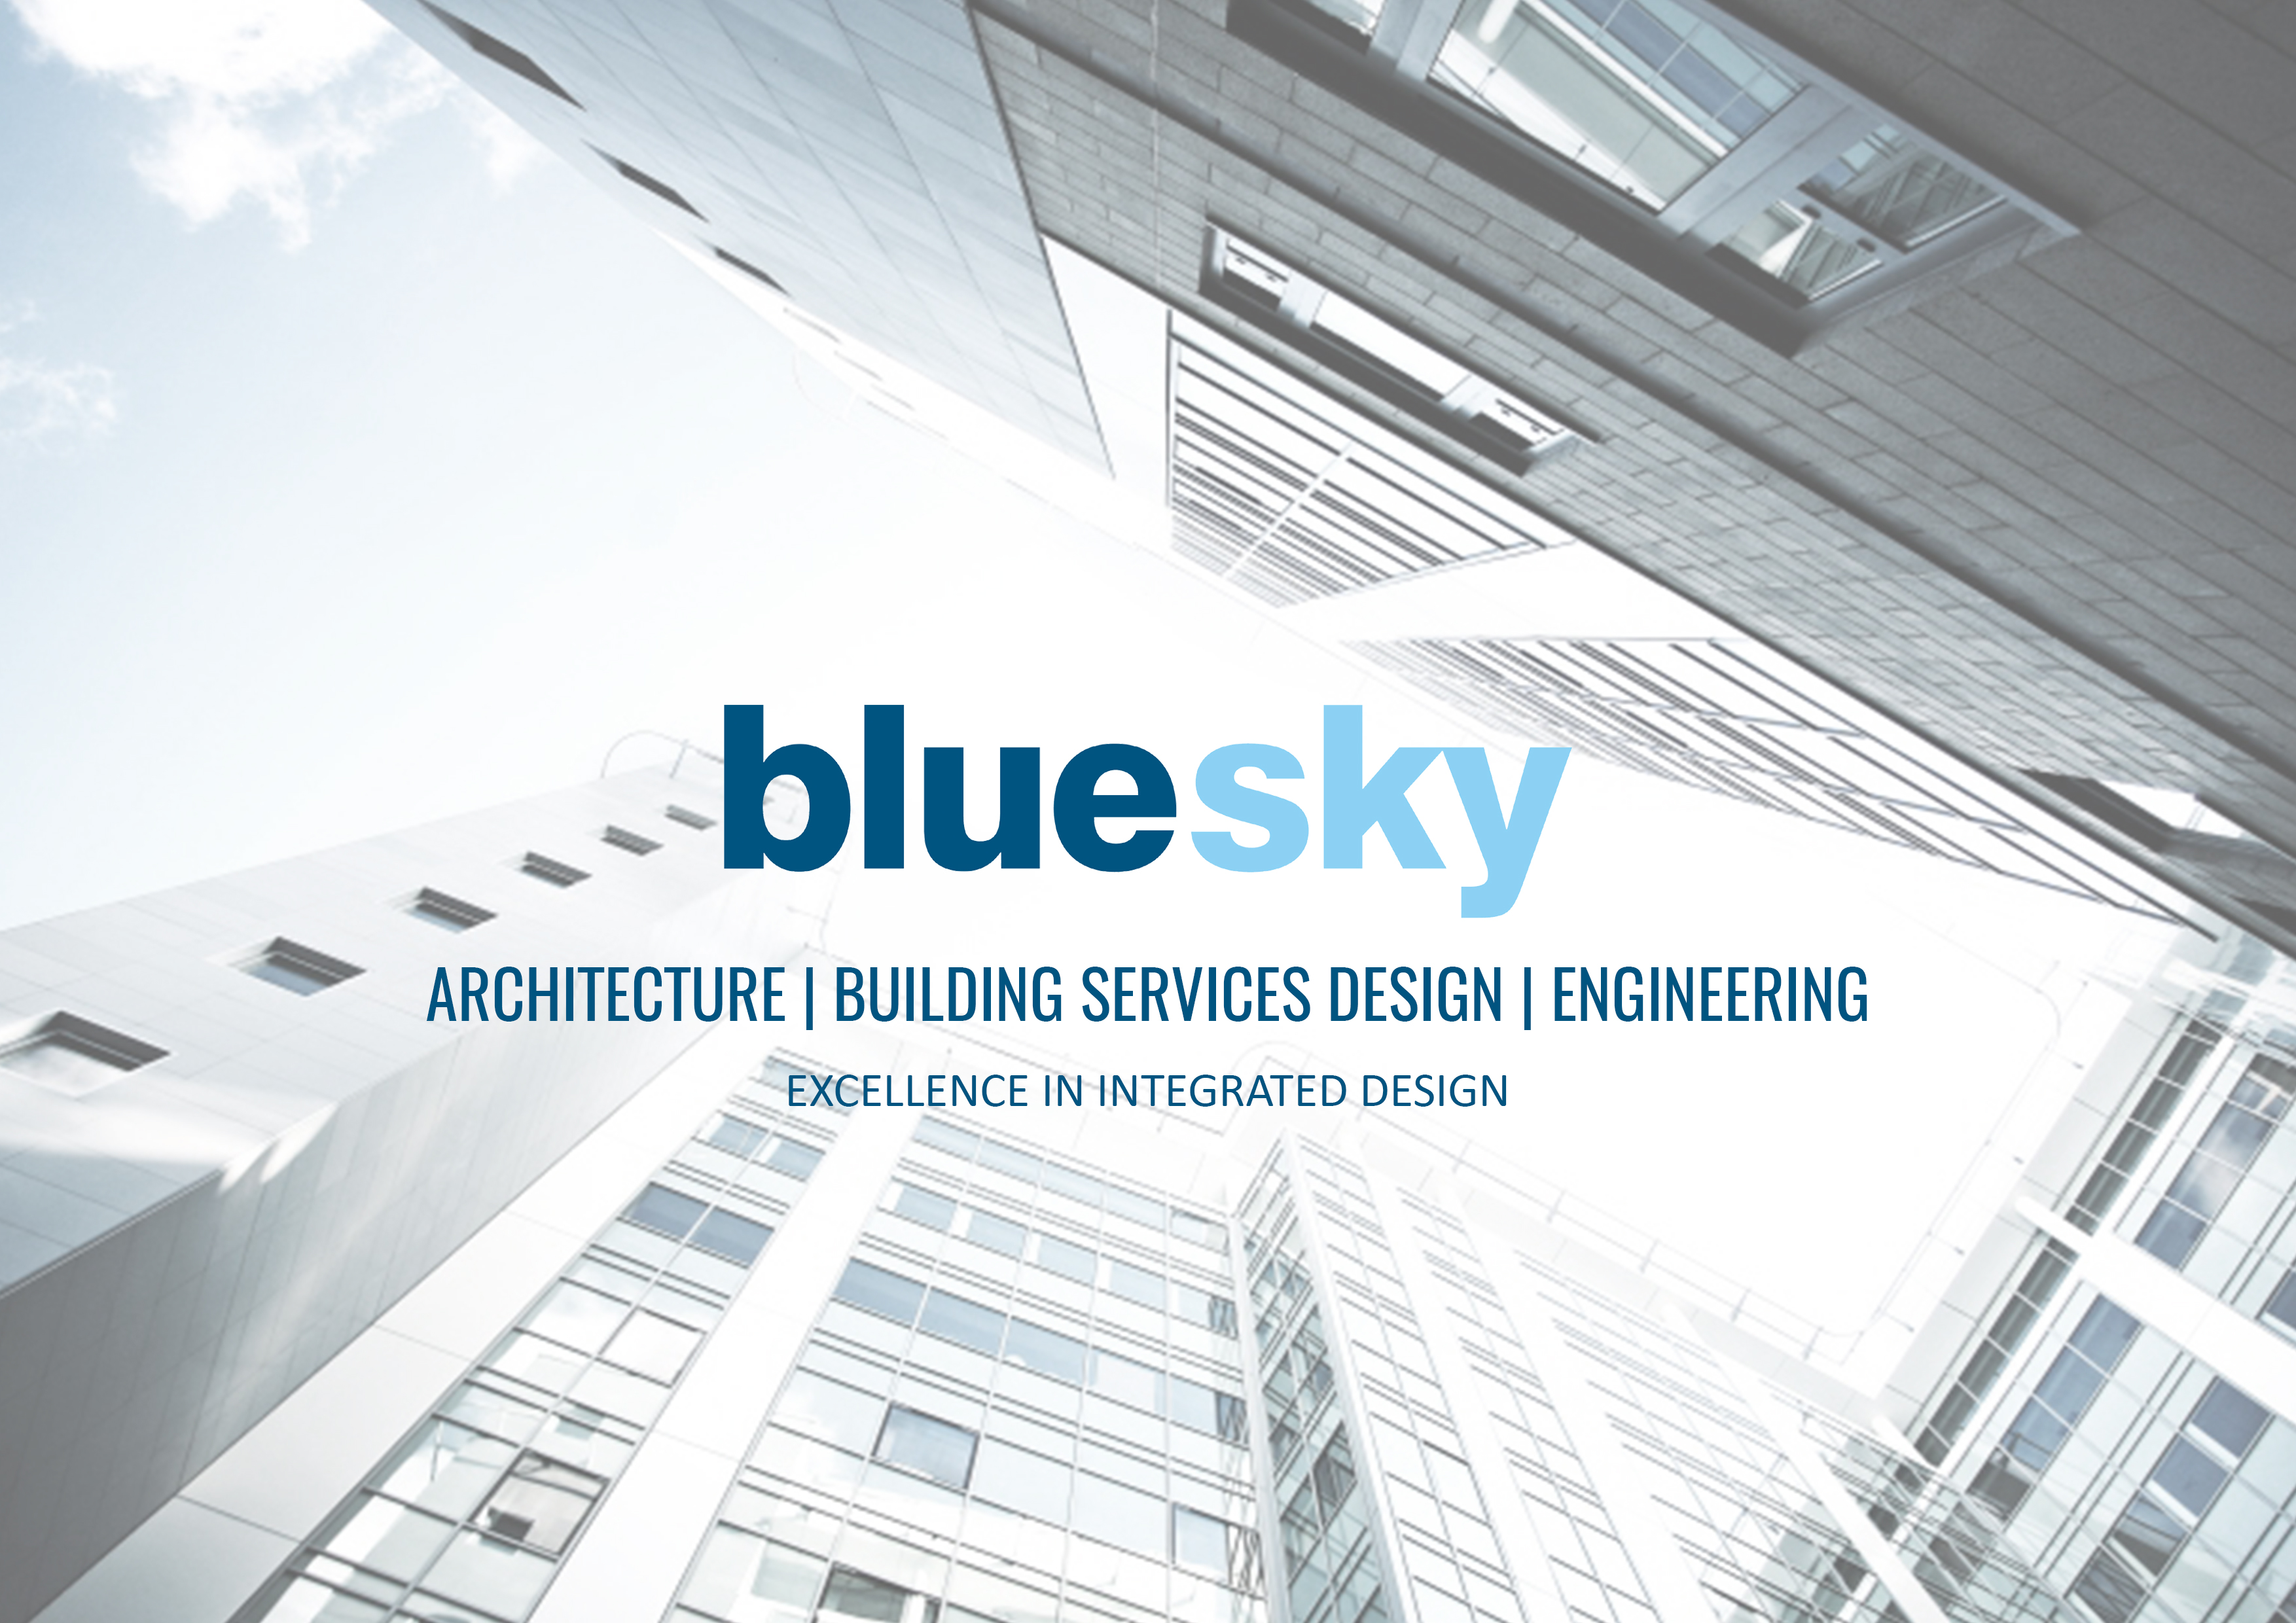 A New Addition To The Group Bluesky Join Forces With Capra Of See More News Stories